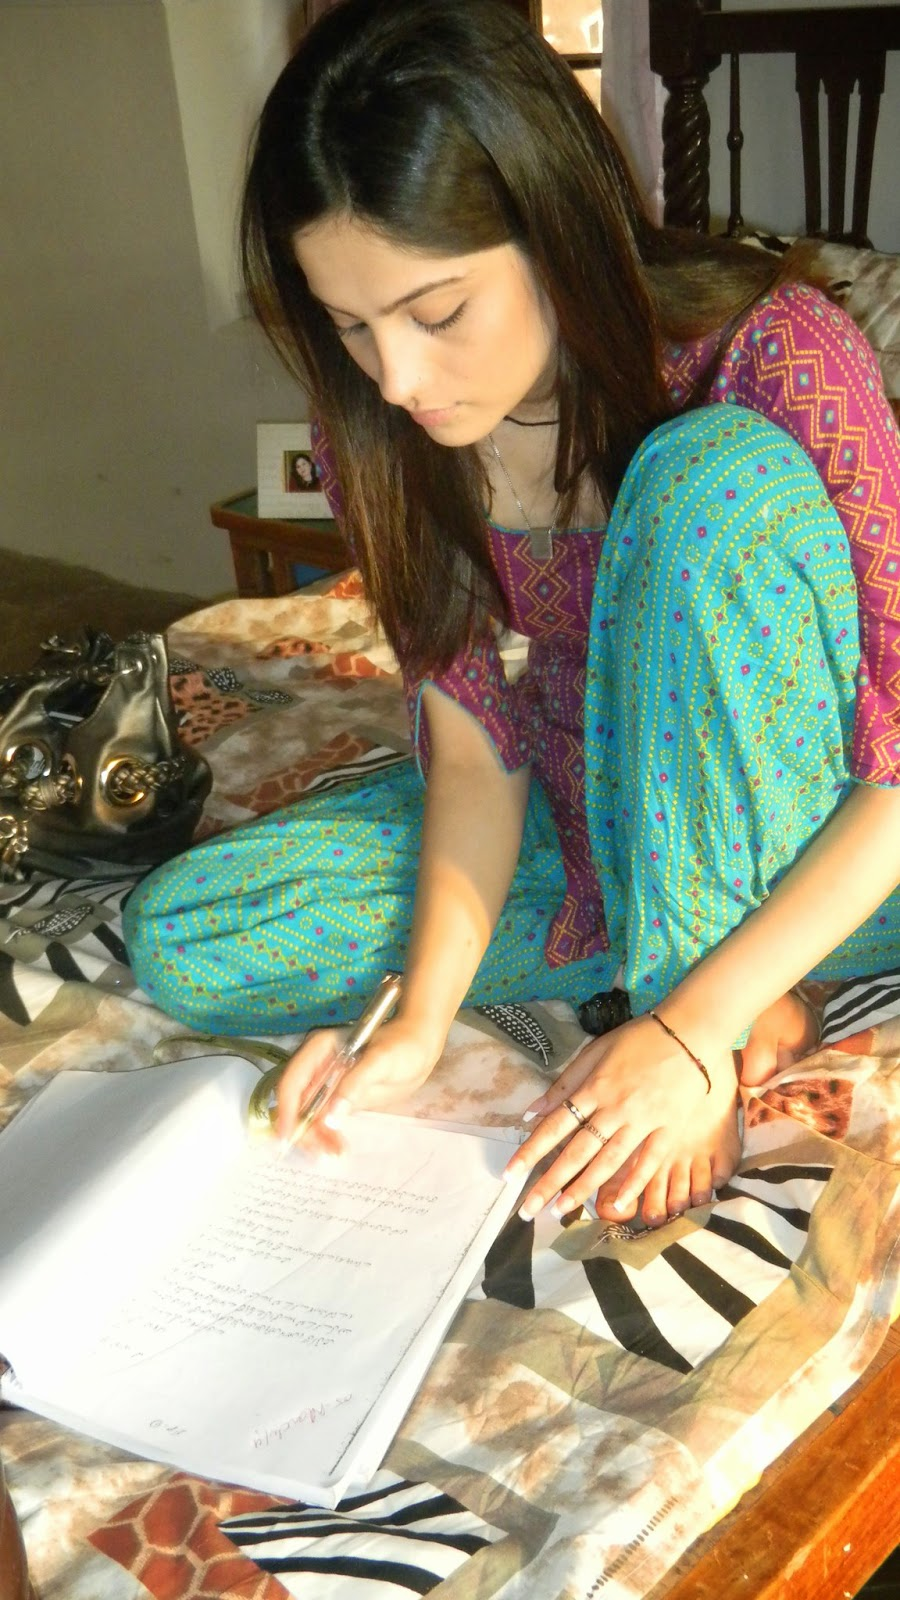 Theme.... Hot sindhi girls pictures very valuable